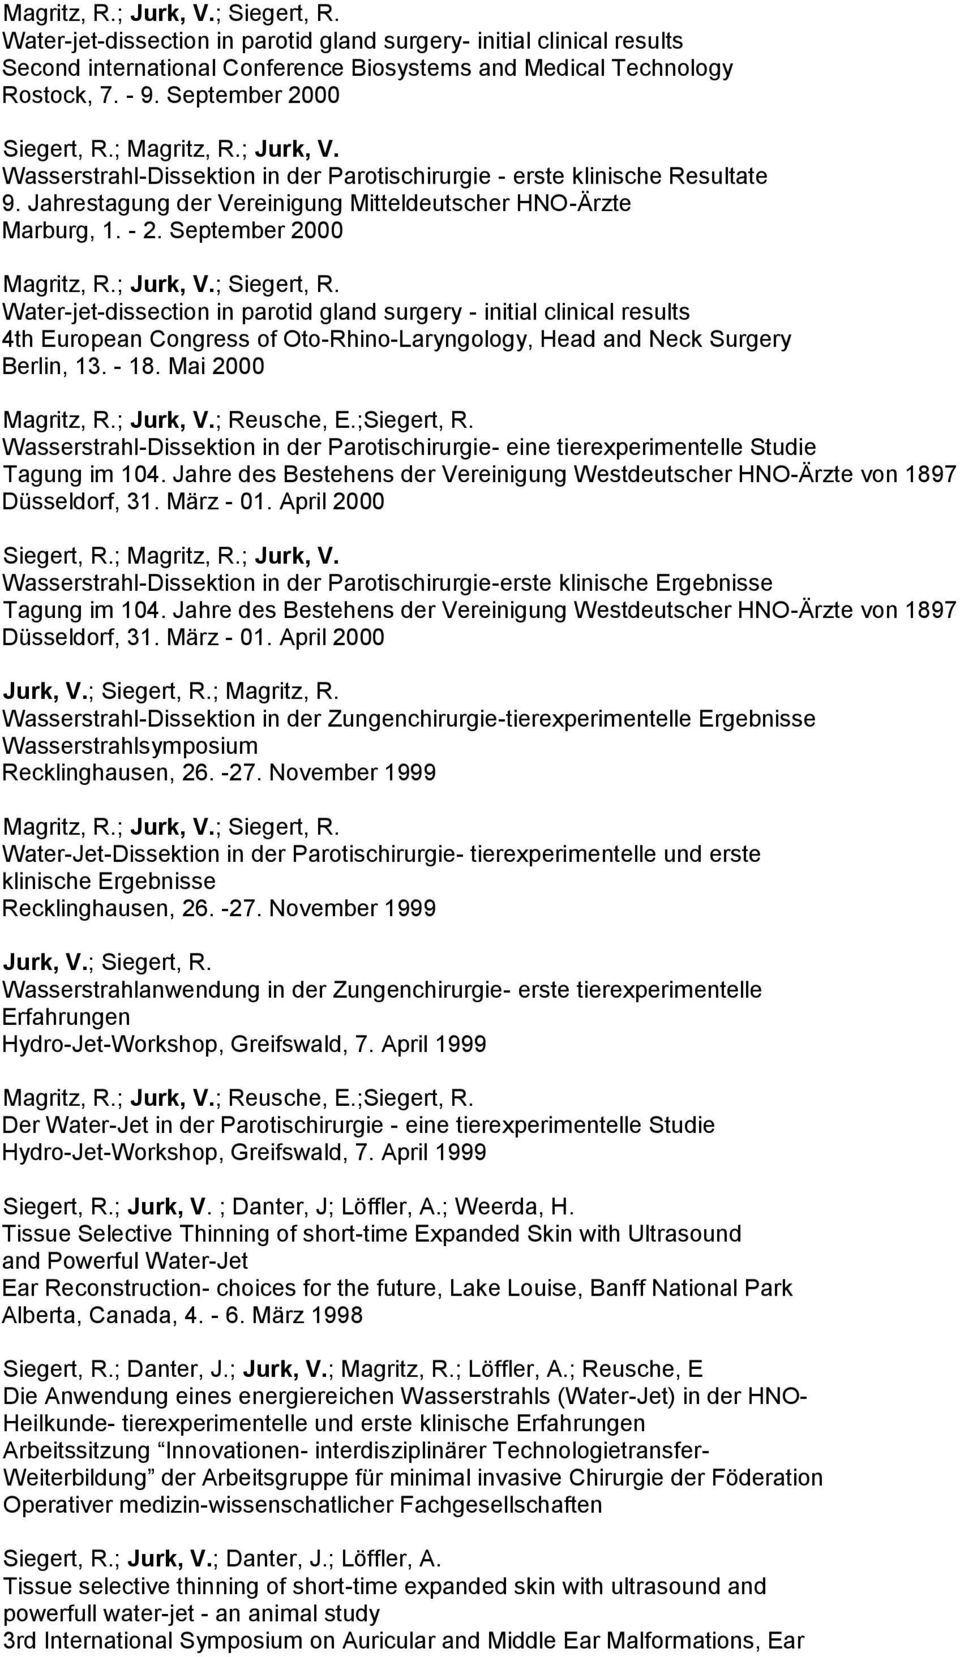 September 2000 Magritz, R.; Water-jet-dissection in parotid gland surgery - initial clinical results 4th European Congress of Oto-Rhino-Laryngology, Head and Neck Surgery Berlin, 13. - 18.